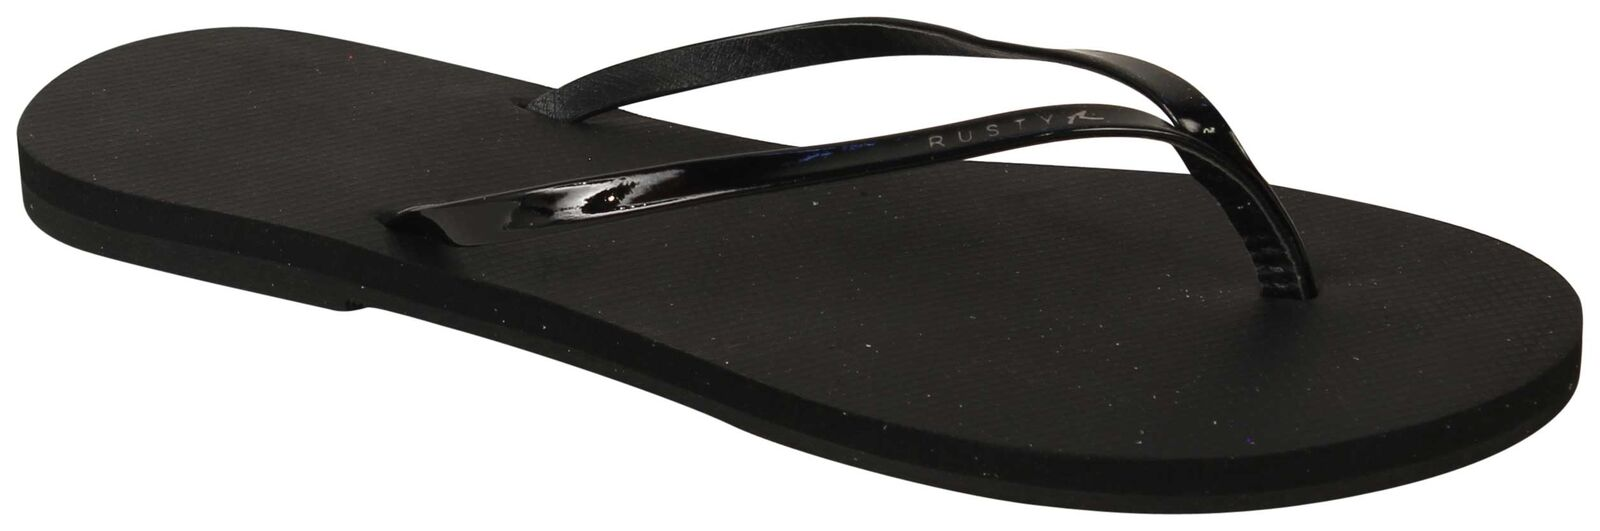 Rusty Shimmy Black Thong Sandal - Black Shimmy Stealth - New 23d13d